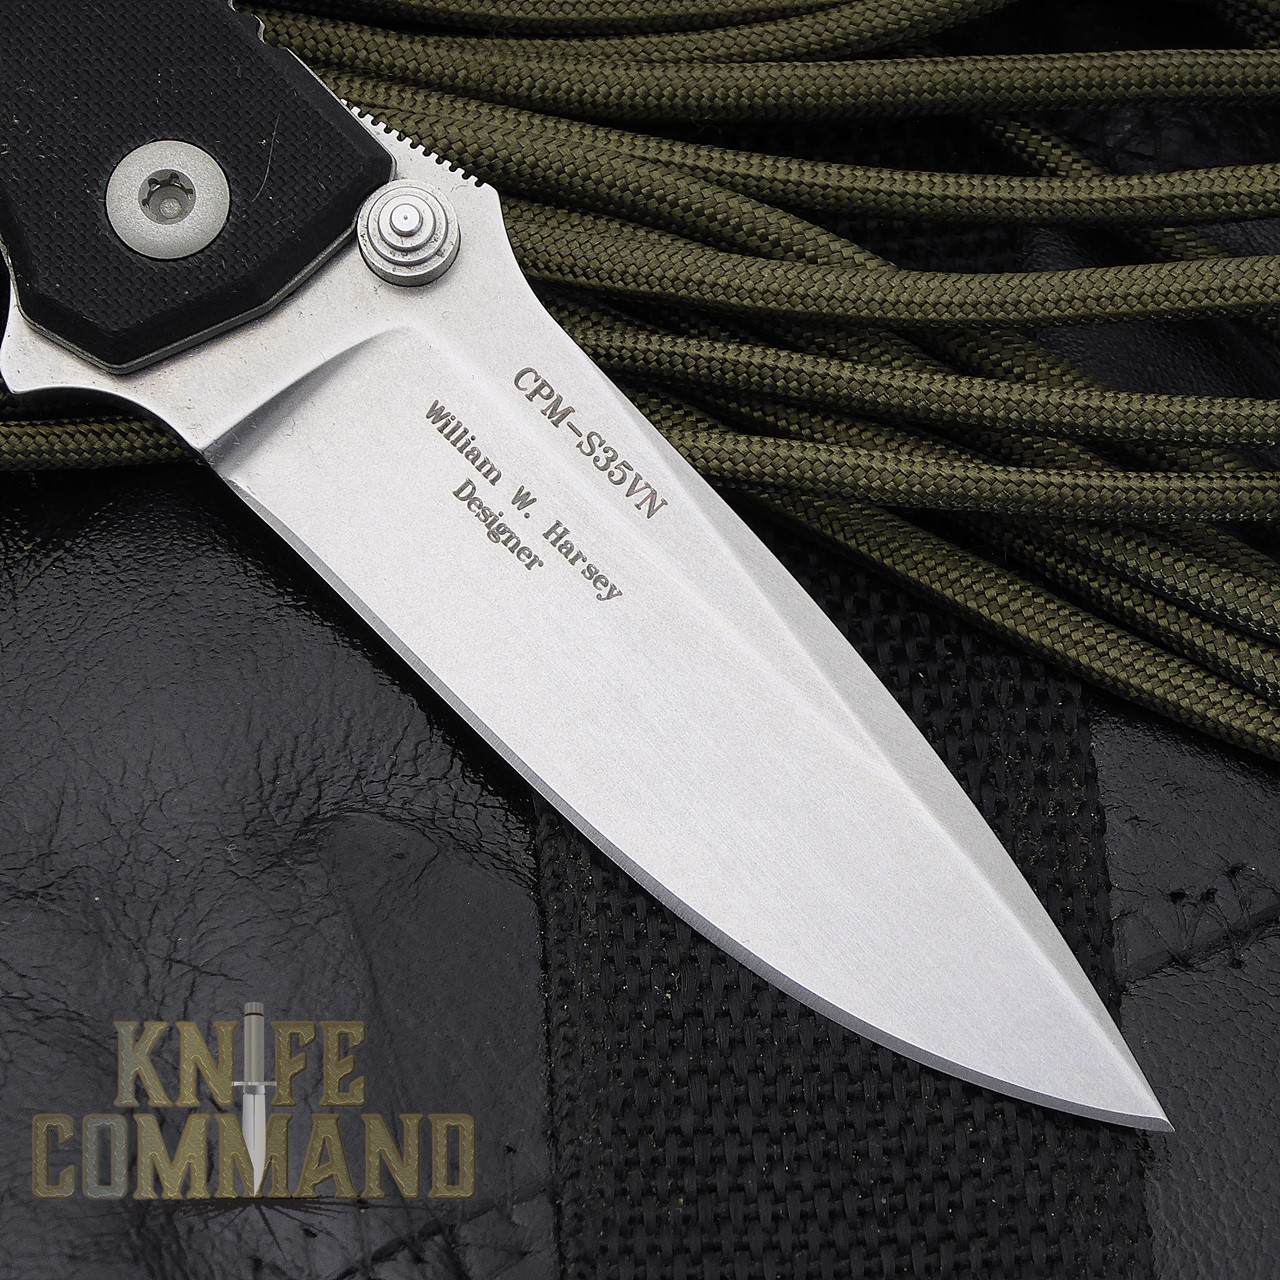 Fantoni HB 02 Black William Harsey Combat Folder Tactical Knife.  CPM-S35VN blade.